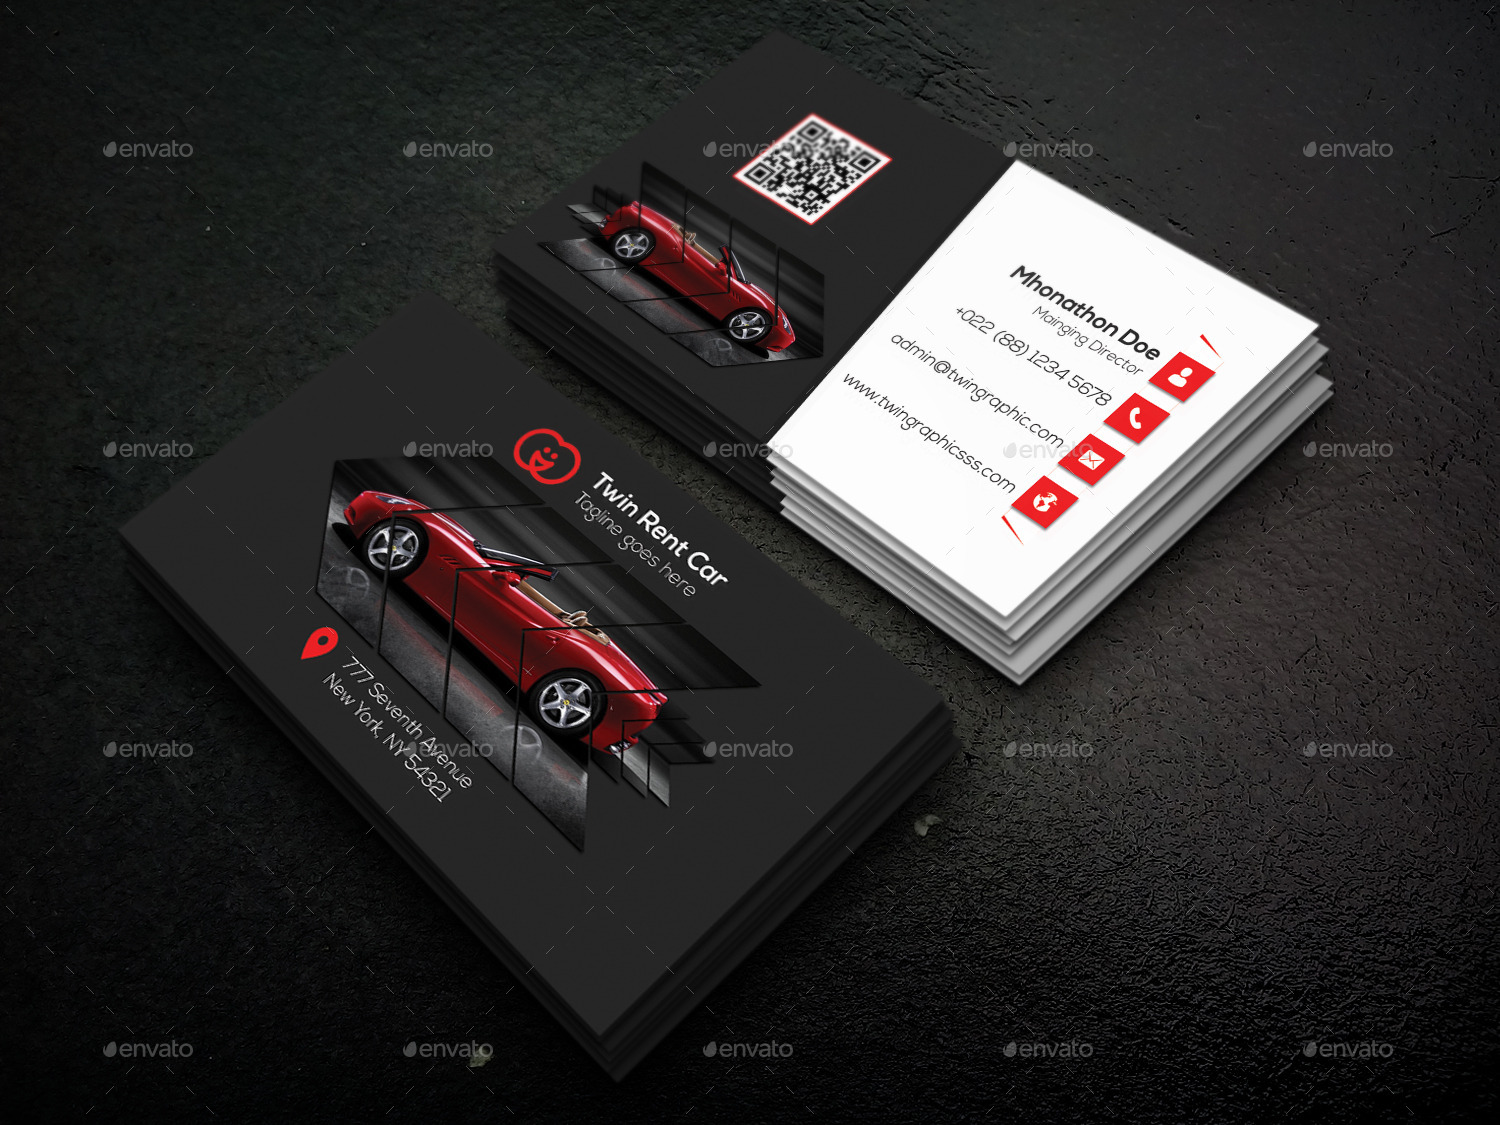 Rent car business card design by twingraphic graphicriver design business cards print templates screen sort01g screen sort02g magicingreecefo Choice Image